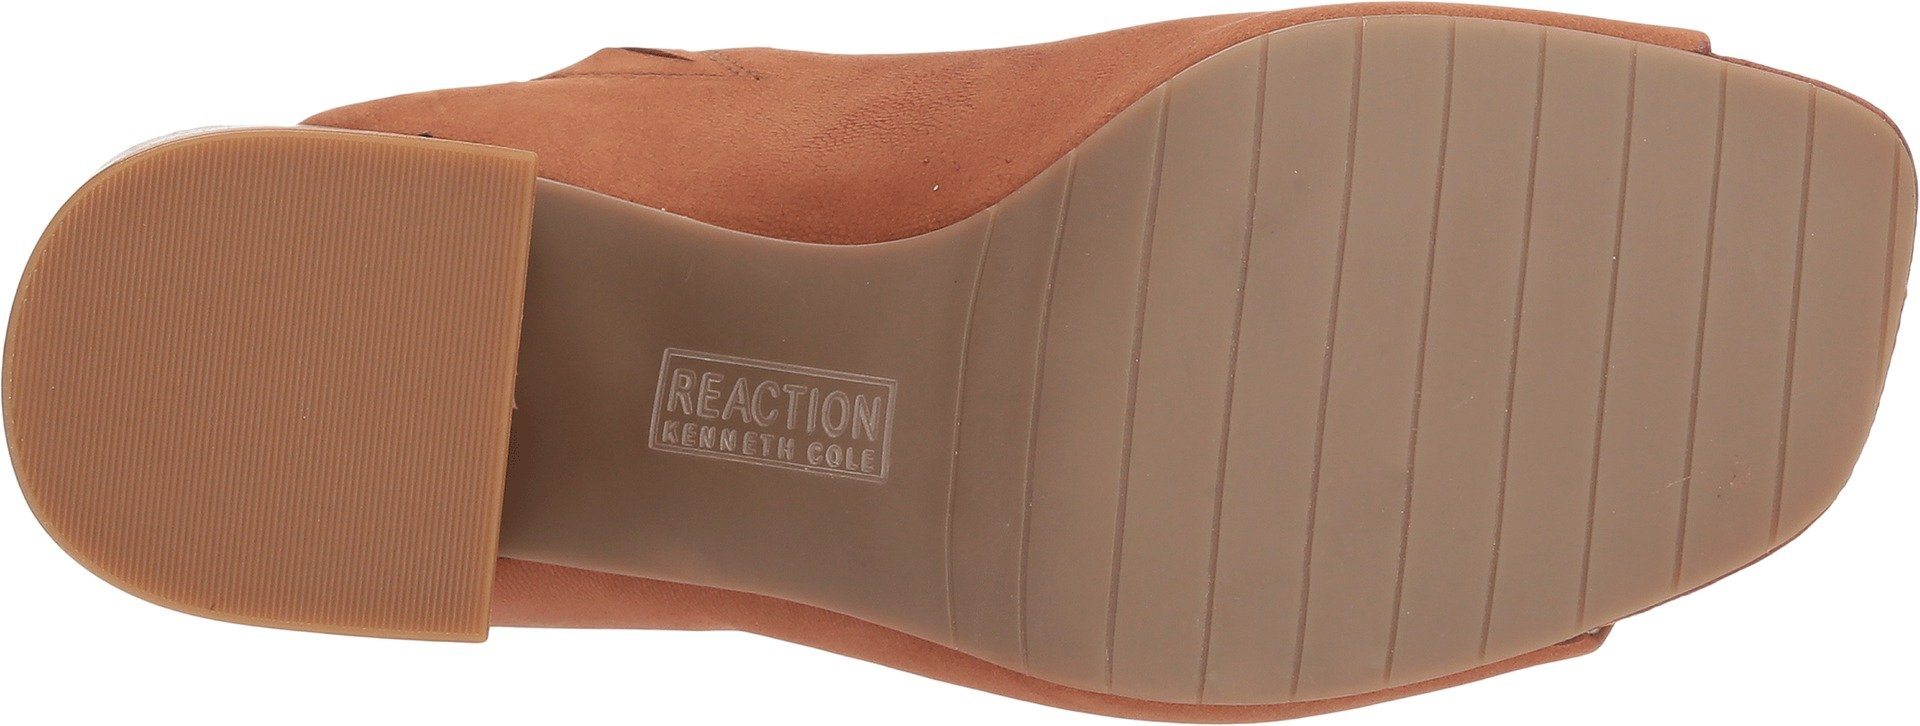 Kenneth Cole REACTION Women's Top Notch Cognac 7.5 M US by Kenneth Cole REACTION (Image #3)